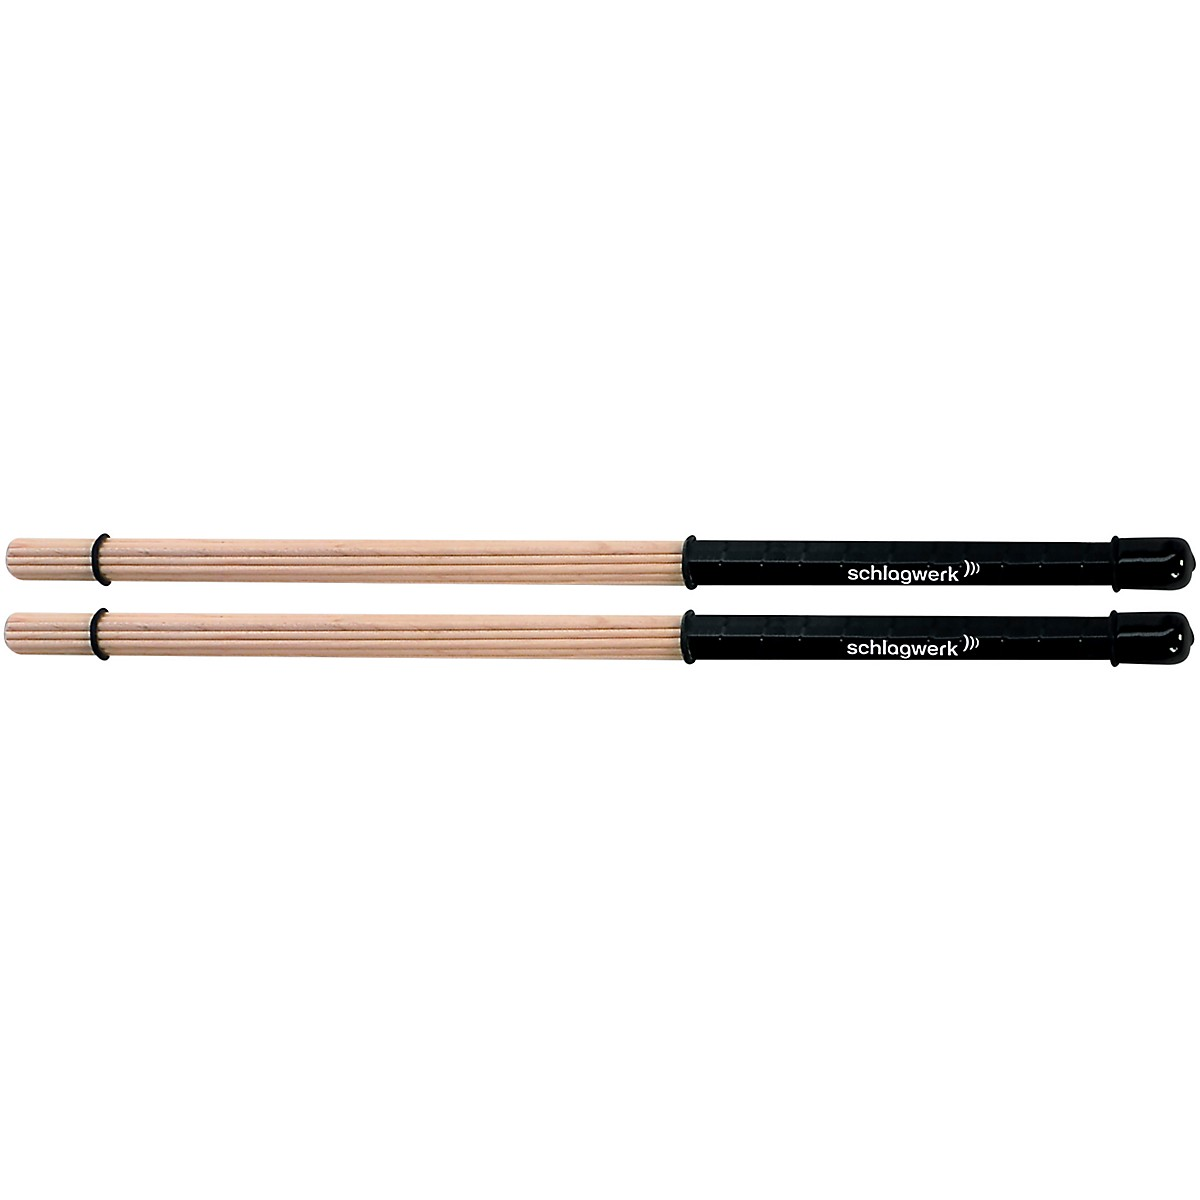 Schlagwerk ROB5 Bambooleo Percussion Rods